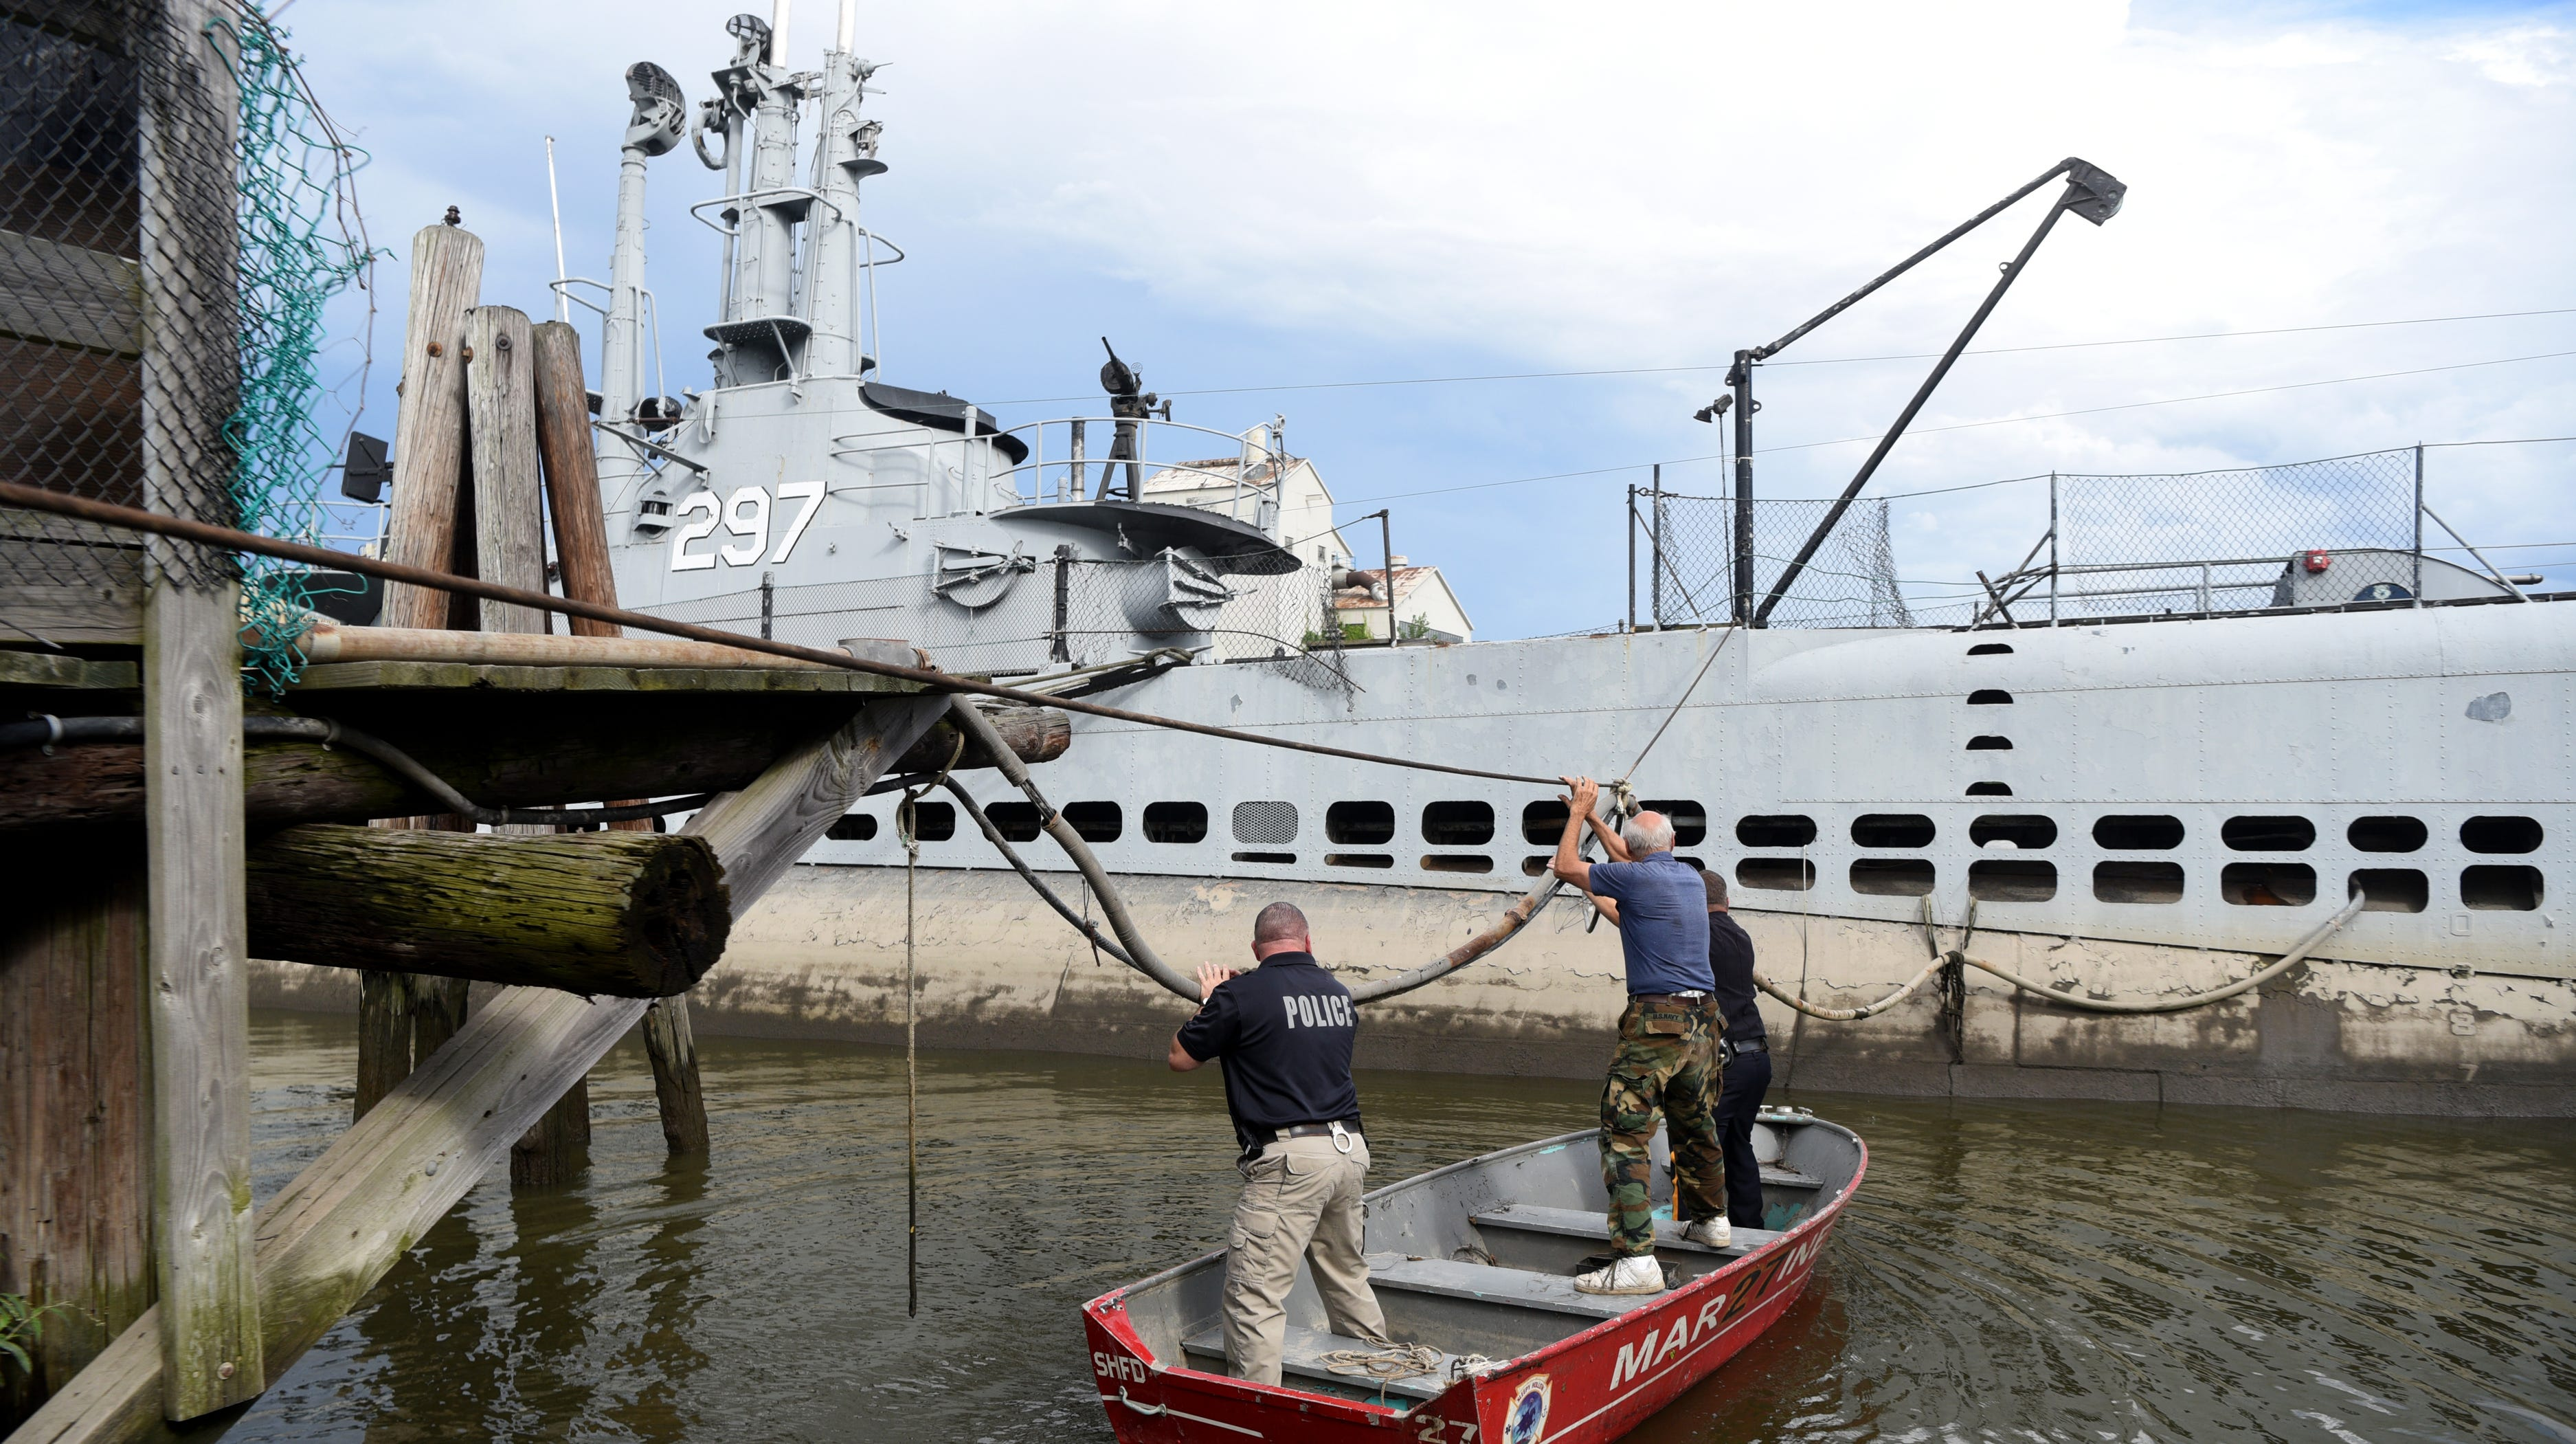 Next steps for Hackensack submarine USS Ling unclear, as 10 feet of water sits inside